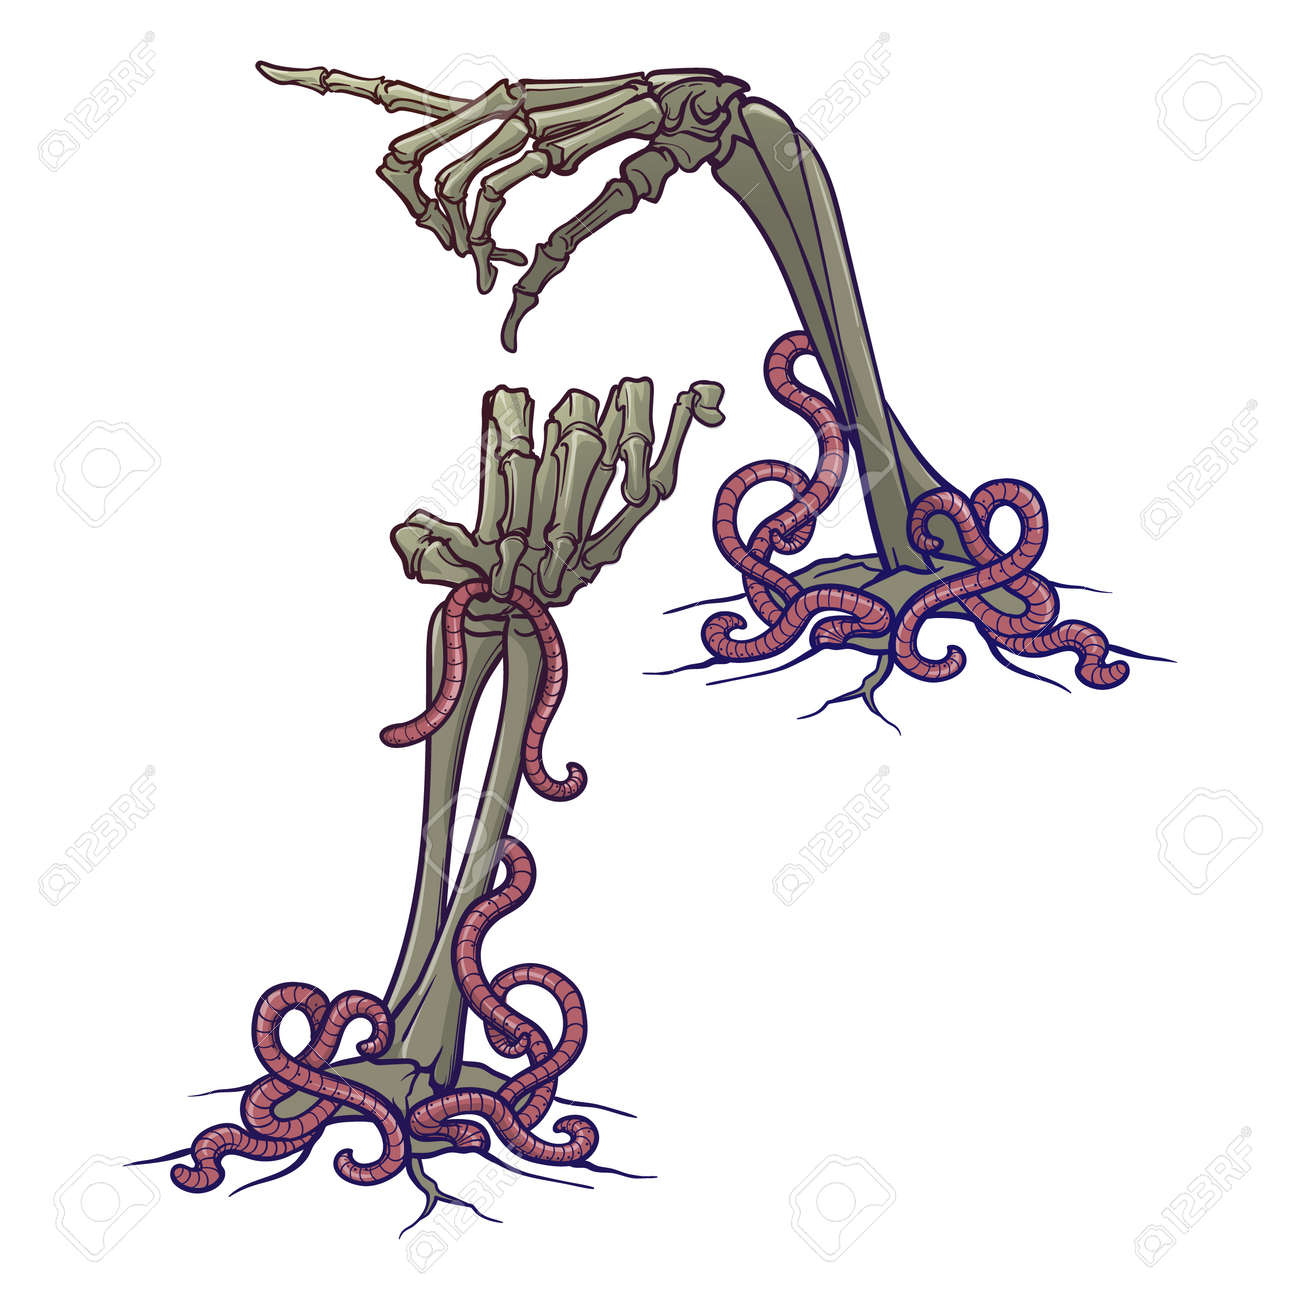 halloween design elements set of skeleton hands pointing with royalty free cliparts vectors and stock illustration image 109543261 halloween design elements set of skeleton hands pointing with